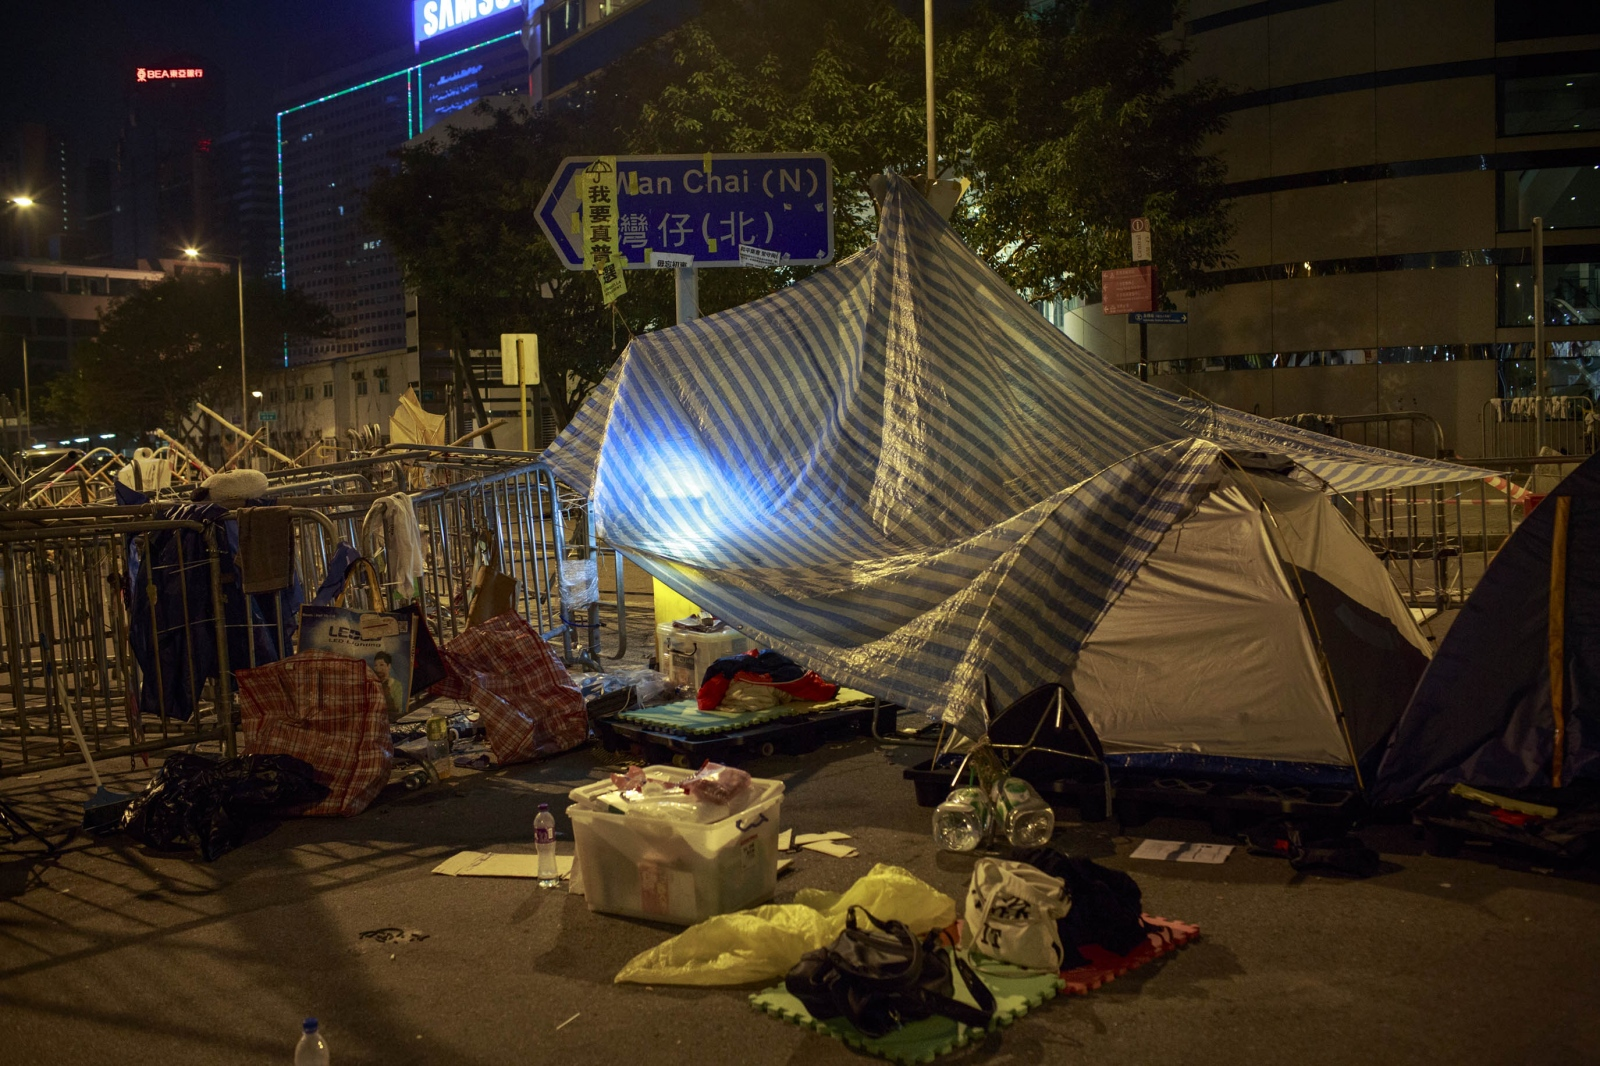 A tarp and tents are seen in one section of the main protest site in the Admiralty district of Hong Kong, on November 16, 2014. For weeks, protesters remained camped out in the heart of Hong Kong, sleeping in tents and staging peaceful demonstrations, whilst blocking major thoroughfares and roads of the city for just over two months, calling for universal suffrage in 2017 with the right to elect the city's own chief executive-- without Beijing's pre-approval of candidates-- a demand that remains rejected by Beijing.